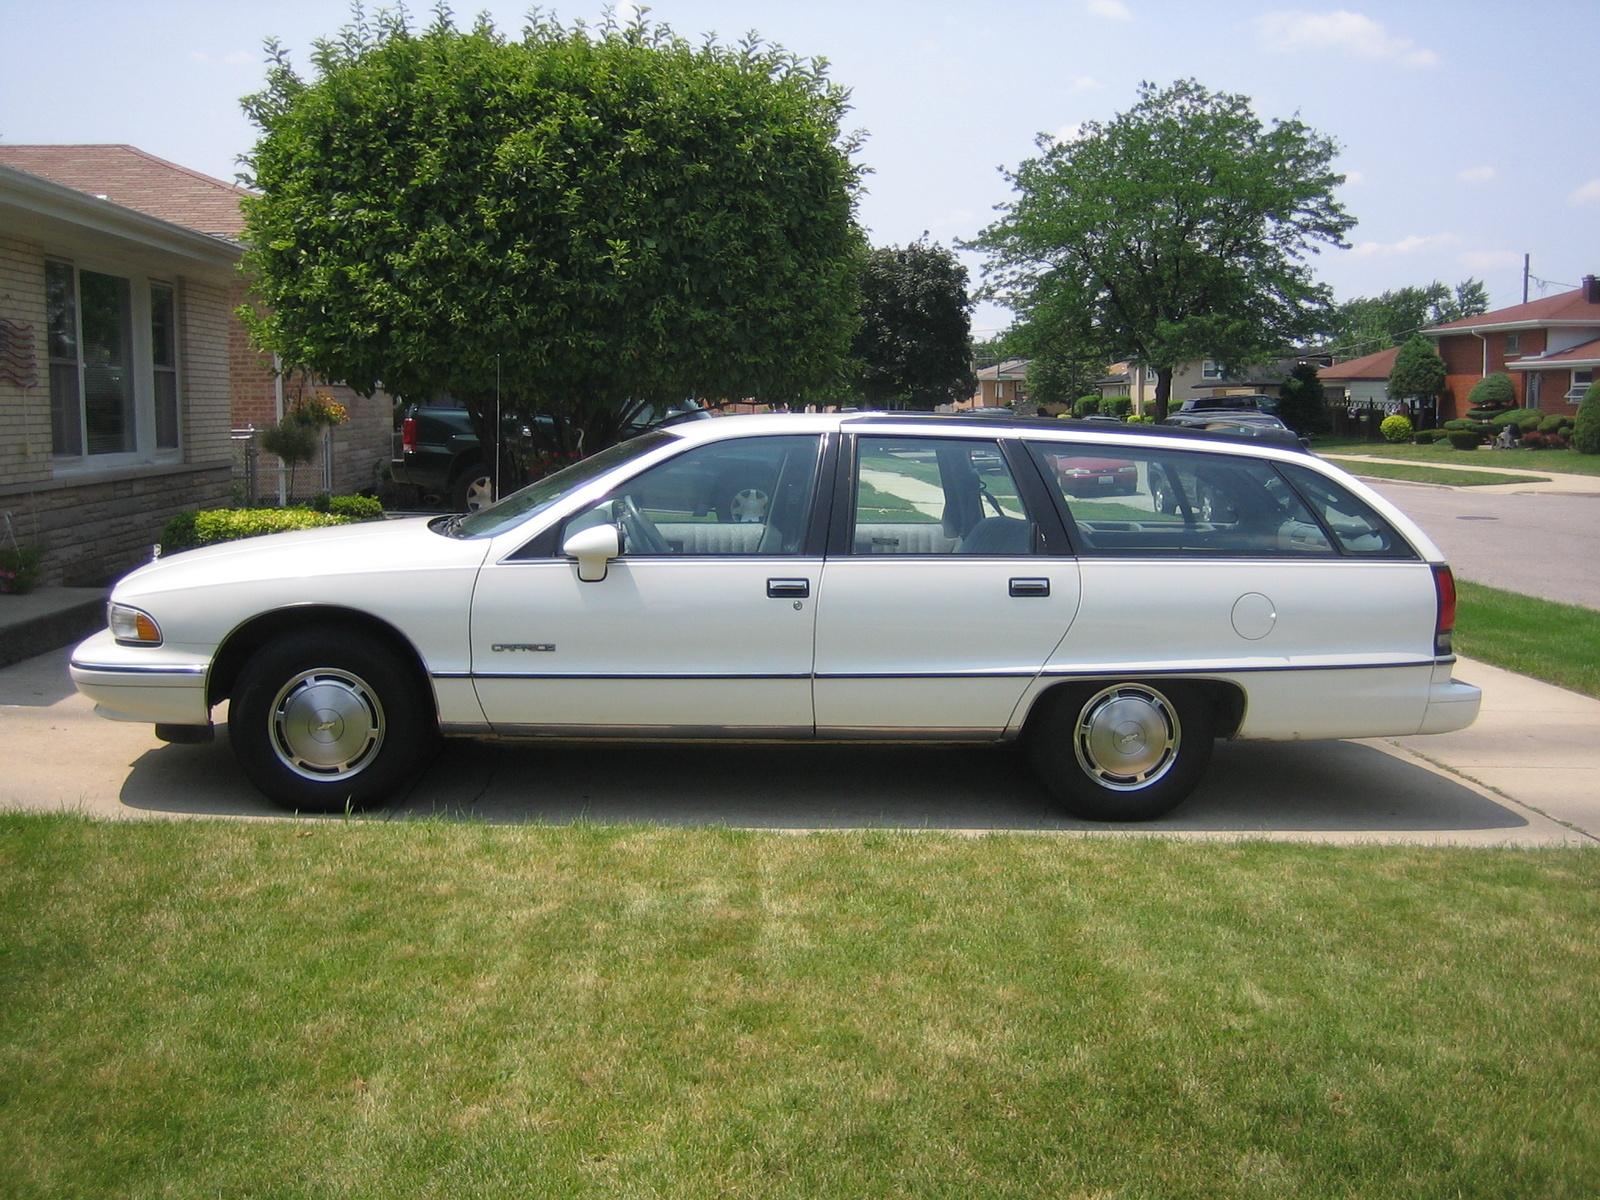 Looking For Box Chevy Wagon As Close To 1990 As Possible